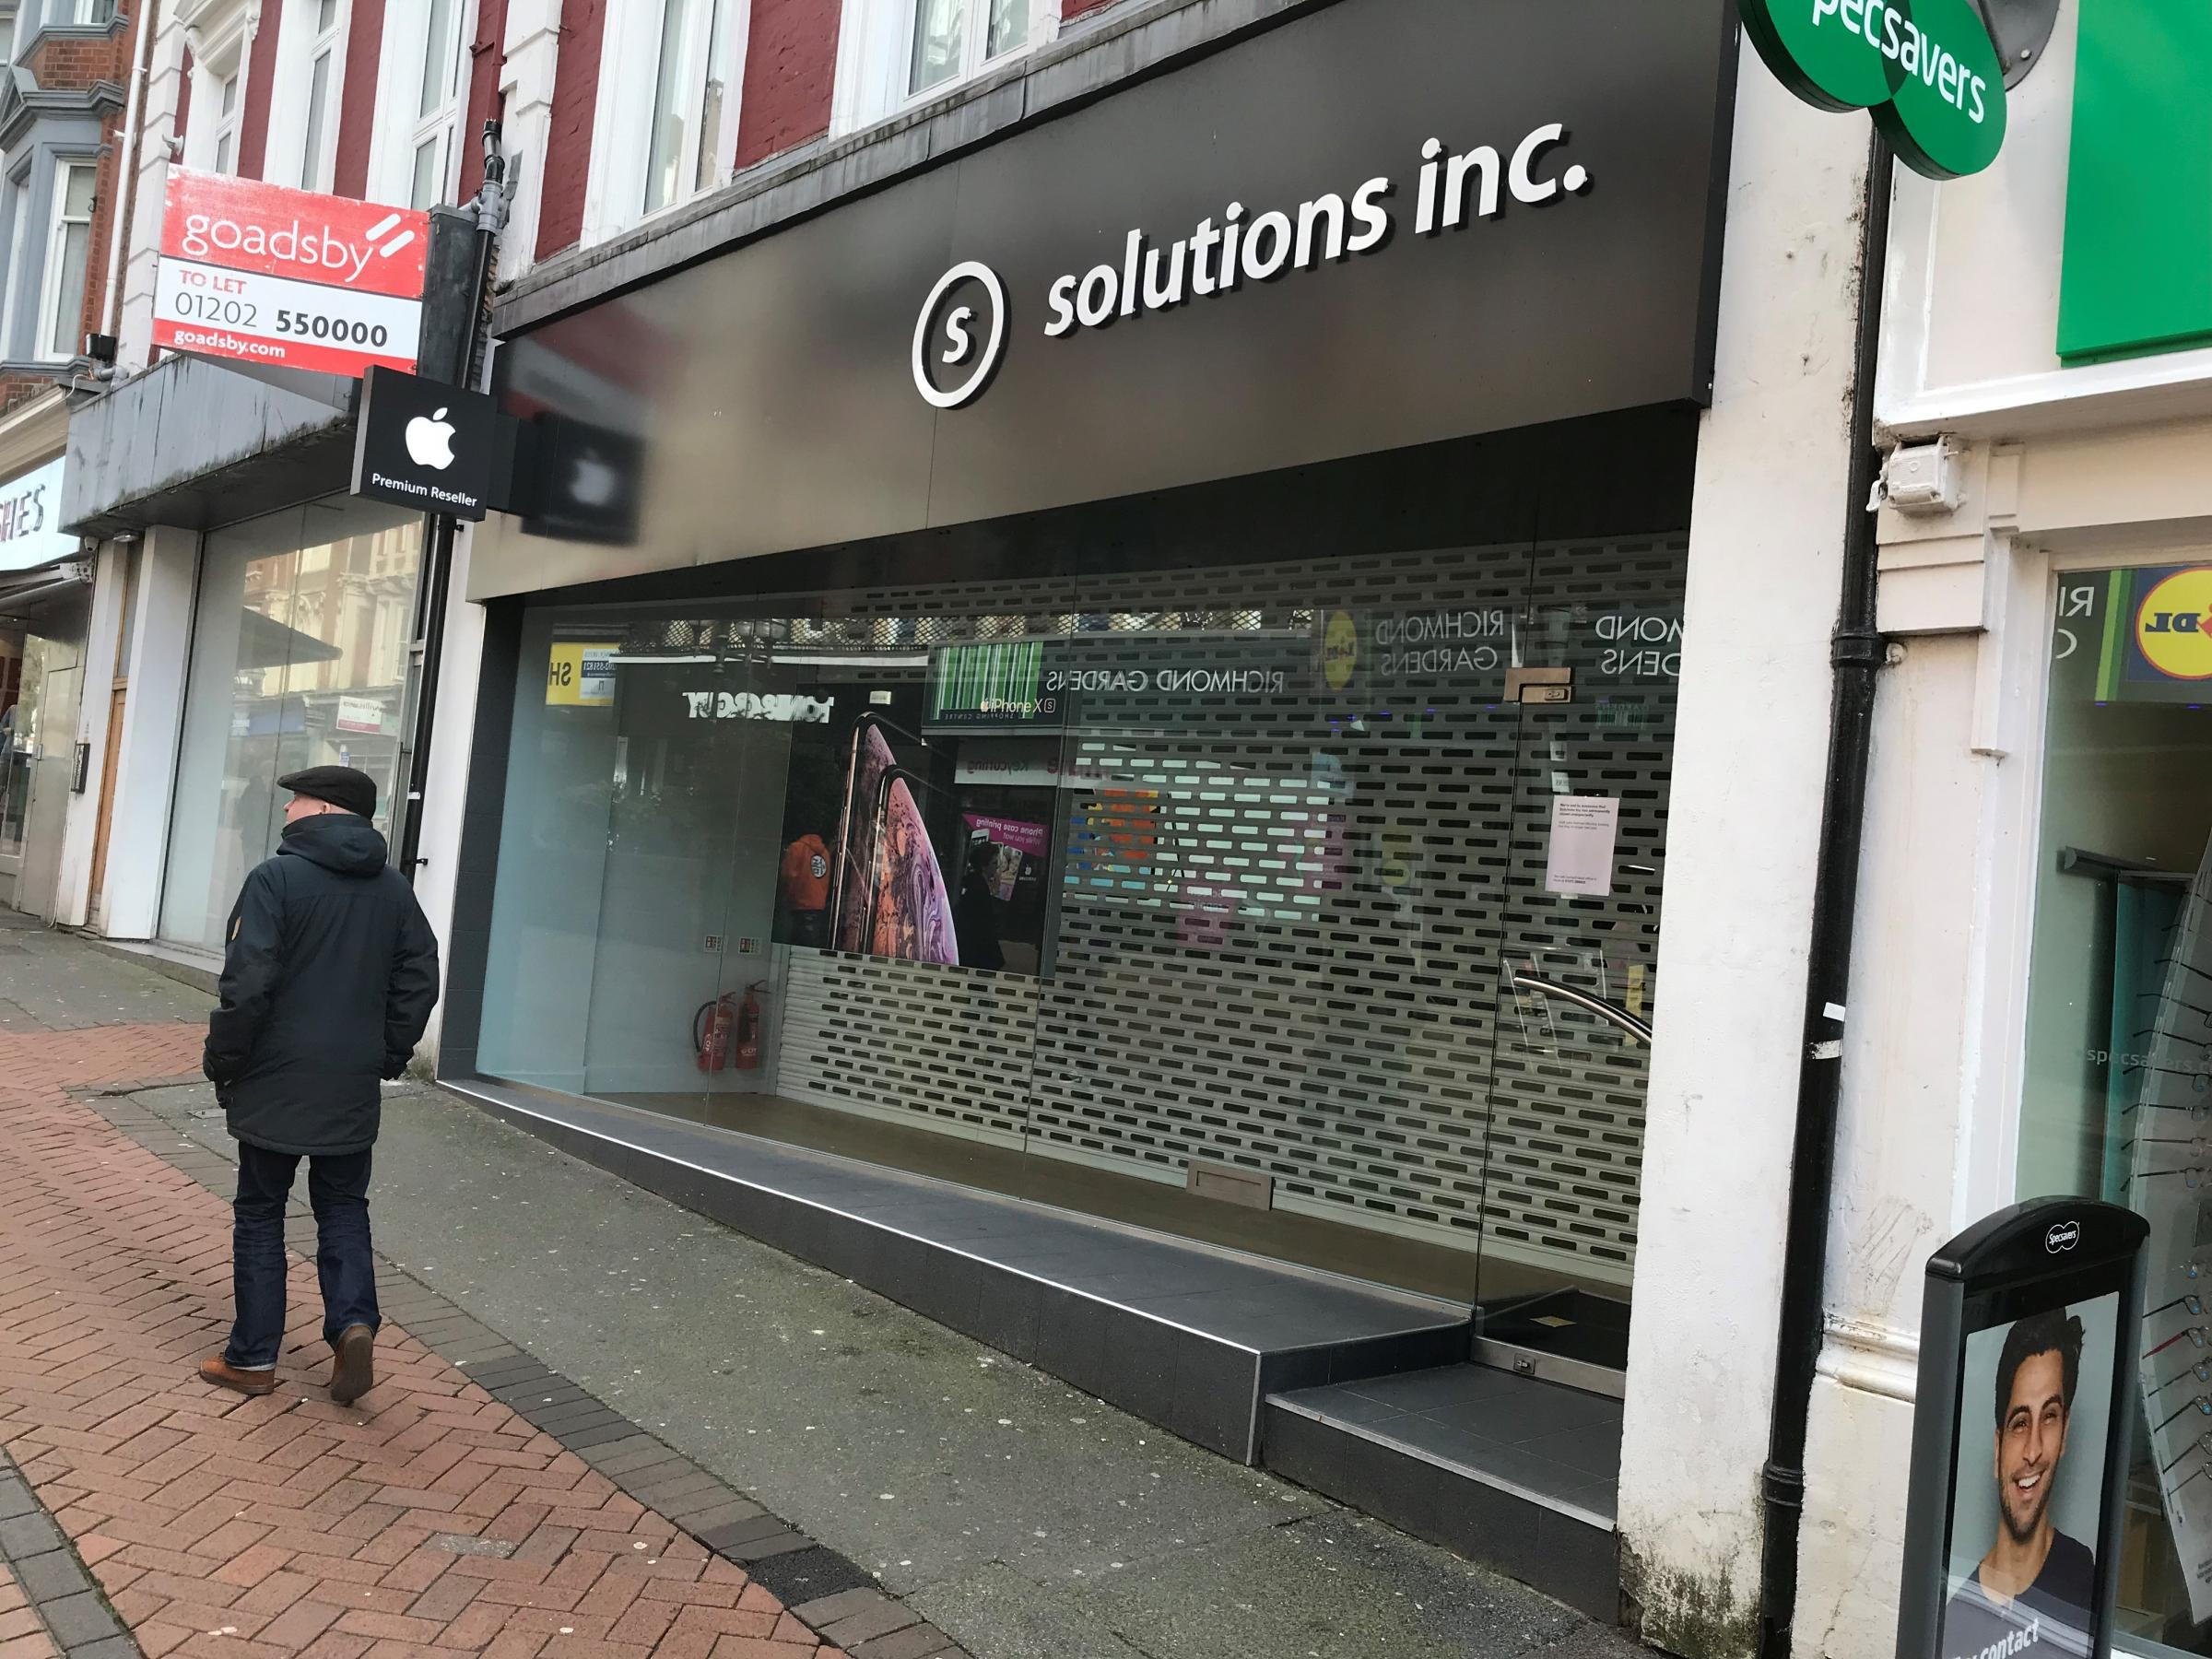 Solutions Inc in Bournemouth has closed unexpectedly